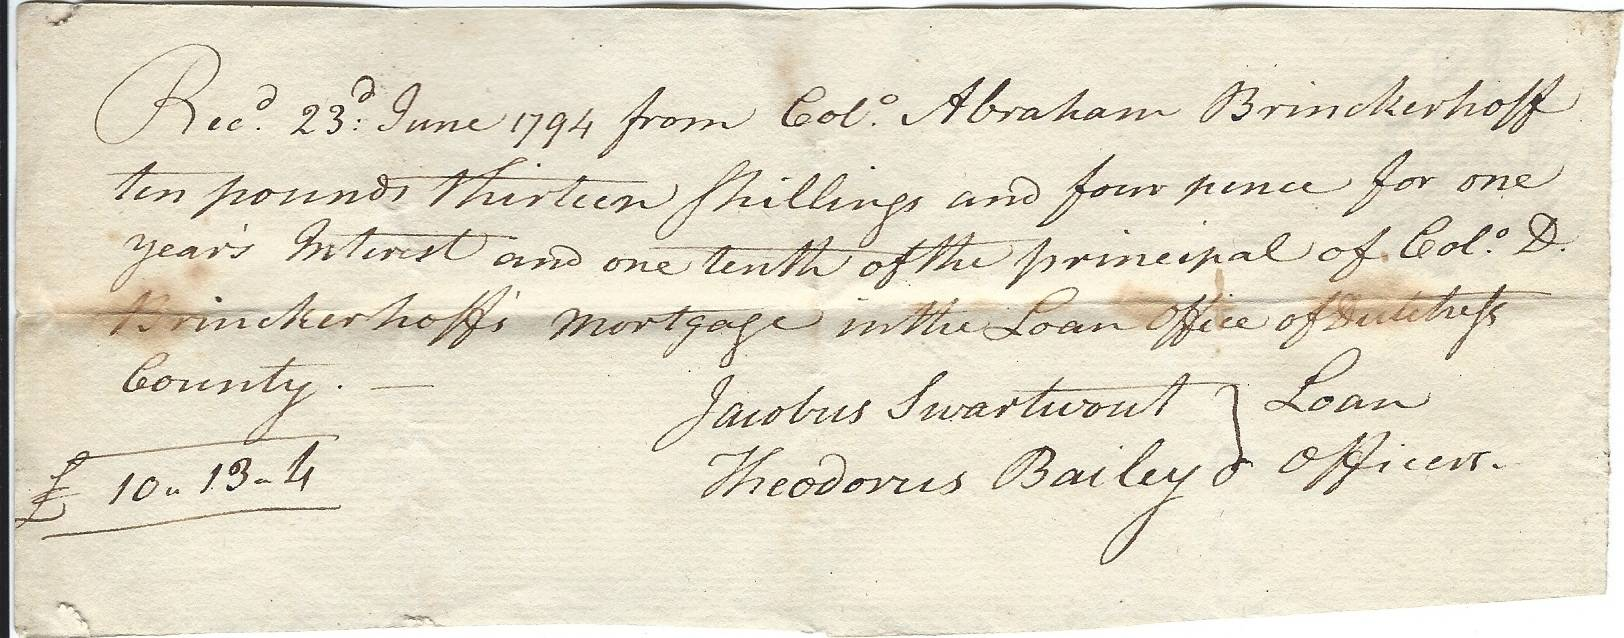 Swartwout Document 1794